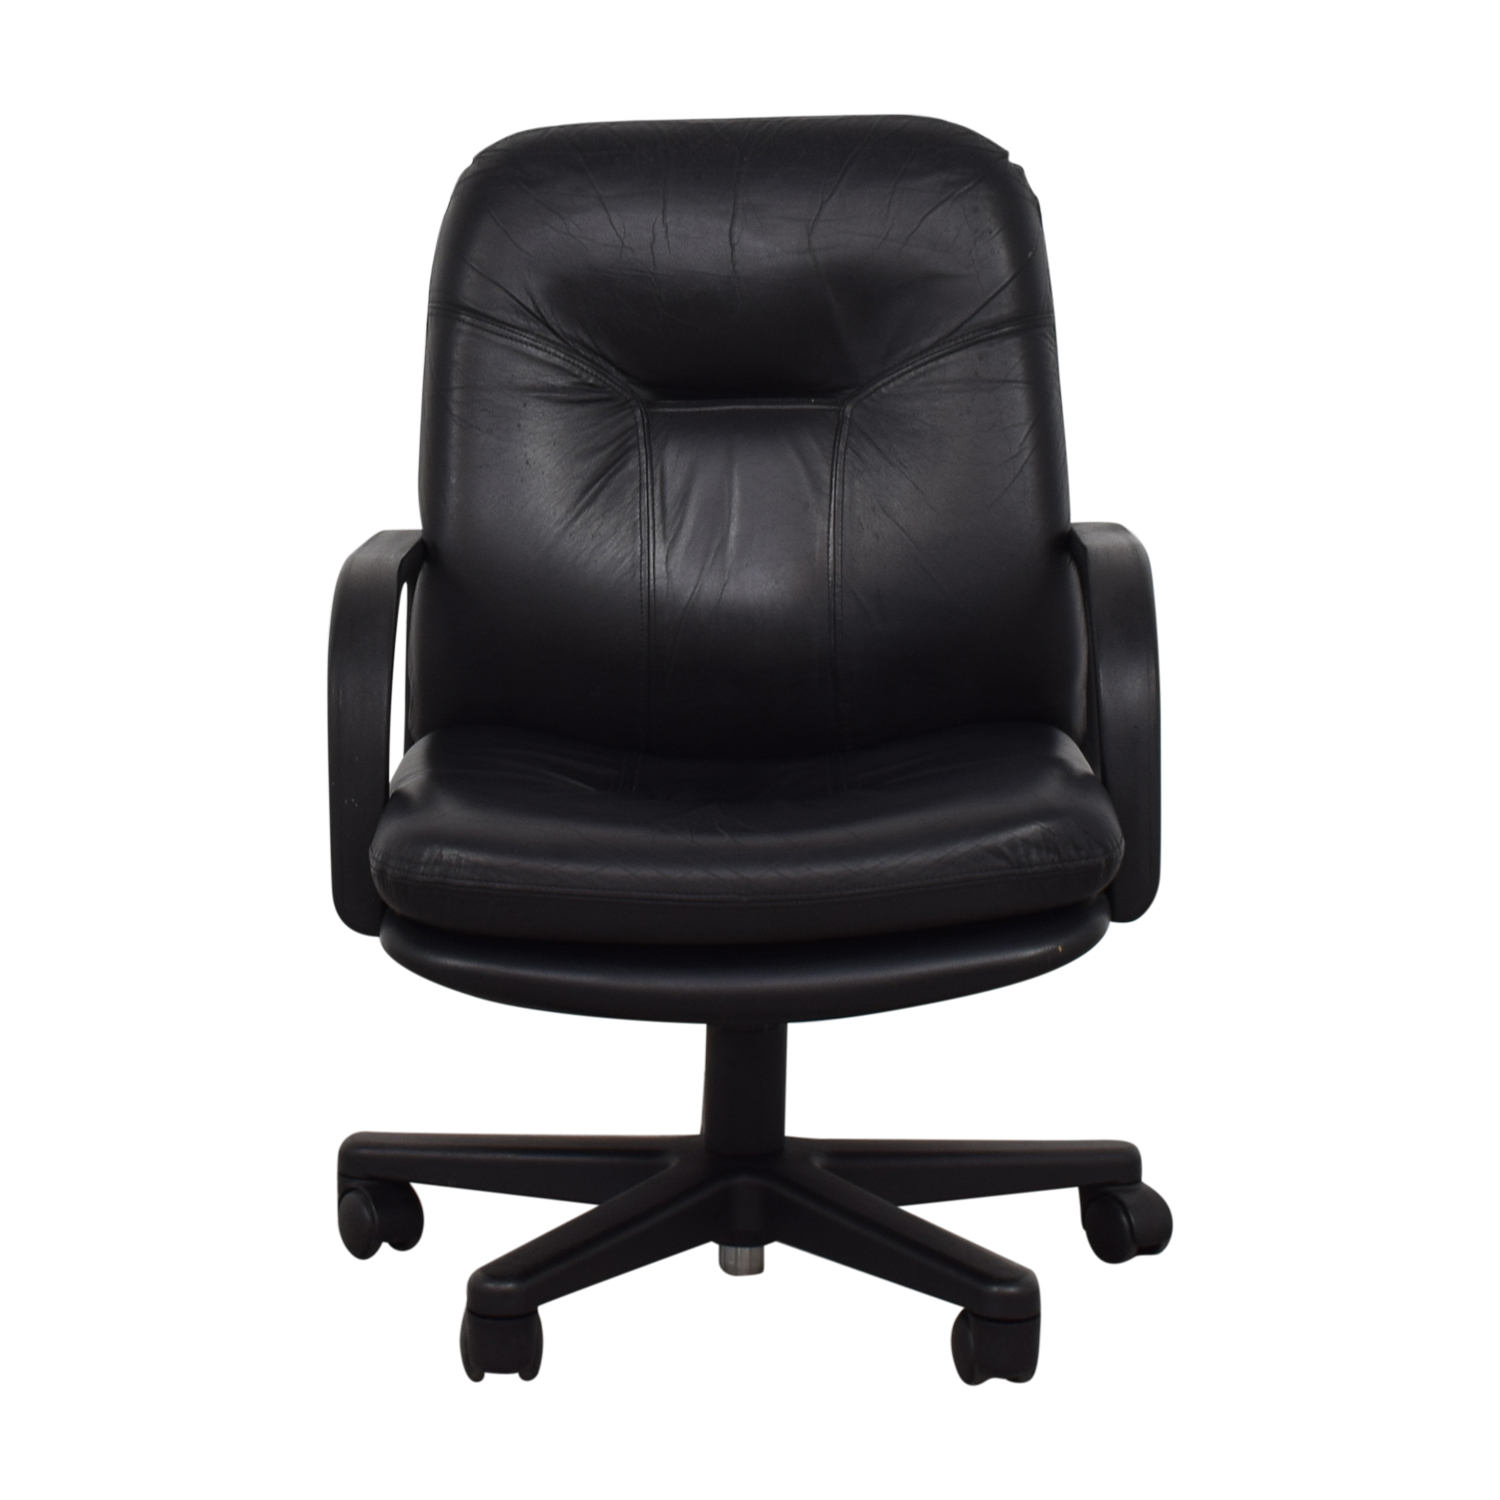 42b8be175de 87% OFF - Black Office Chair   Chairs